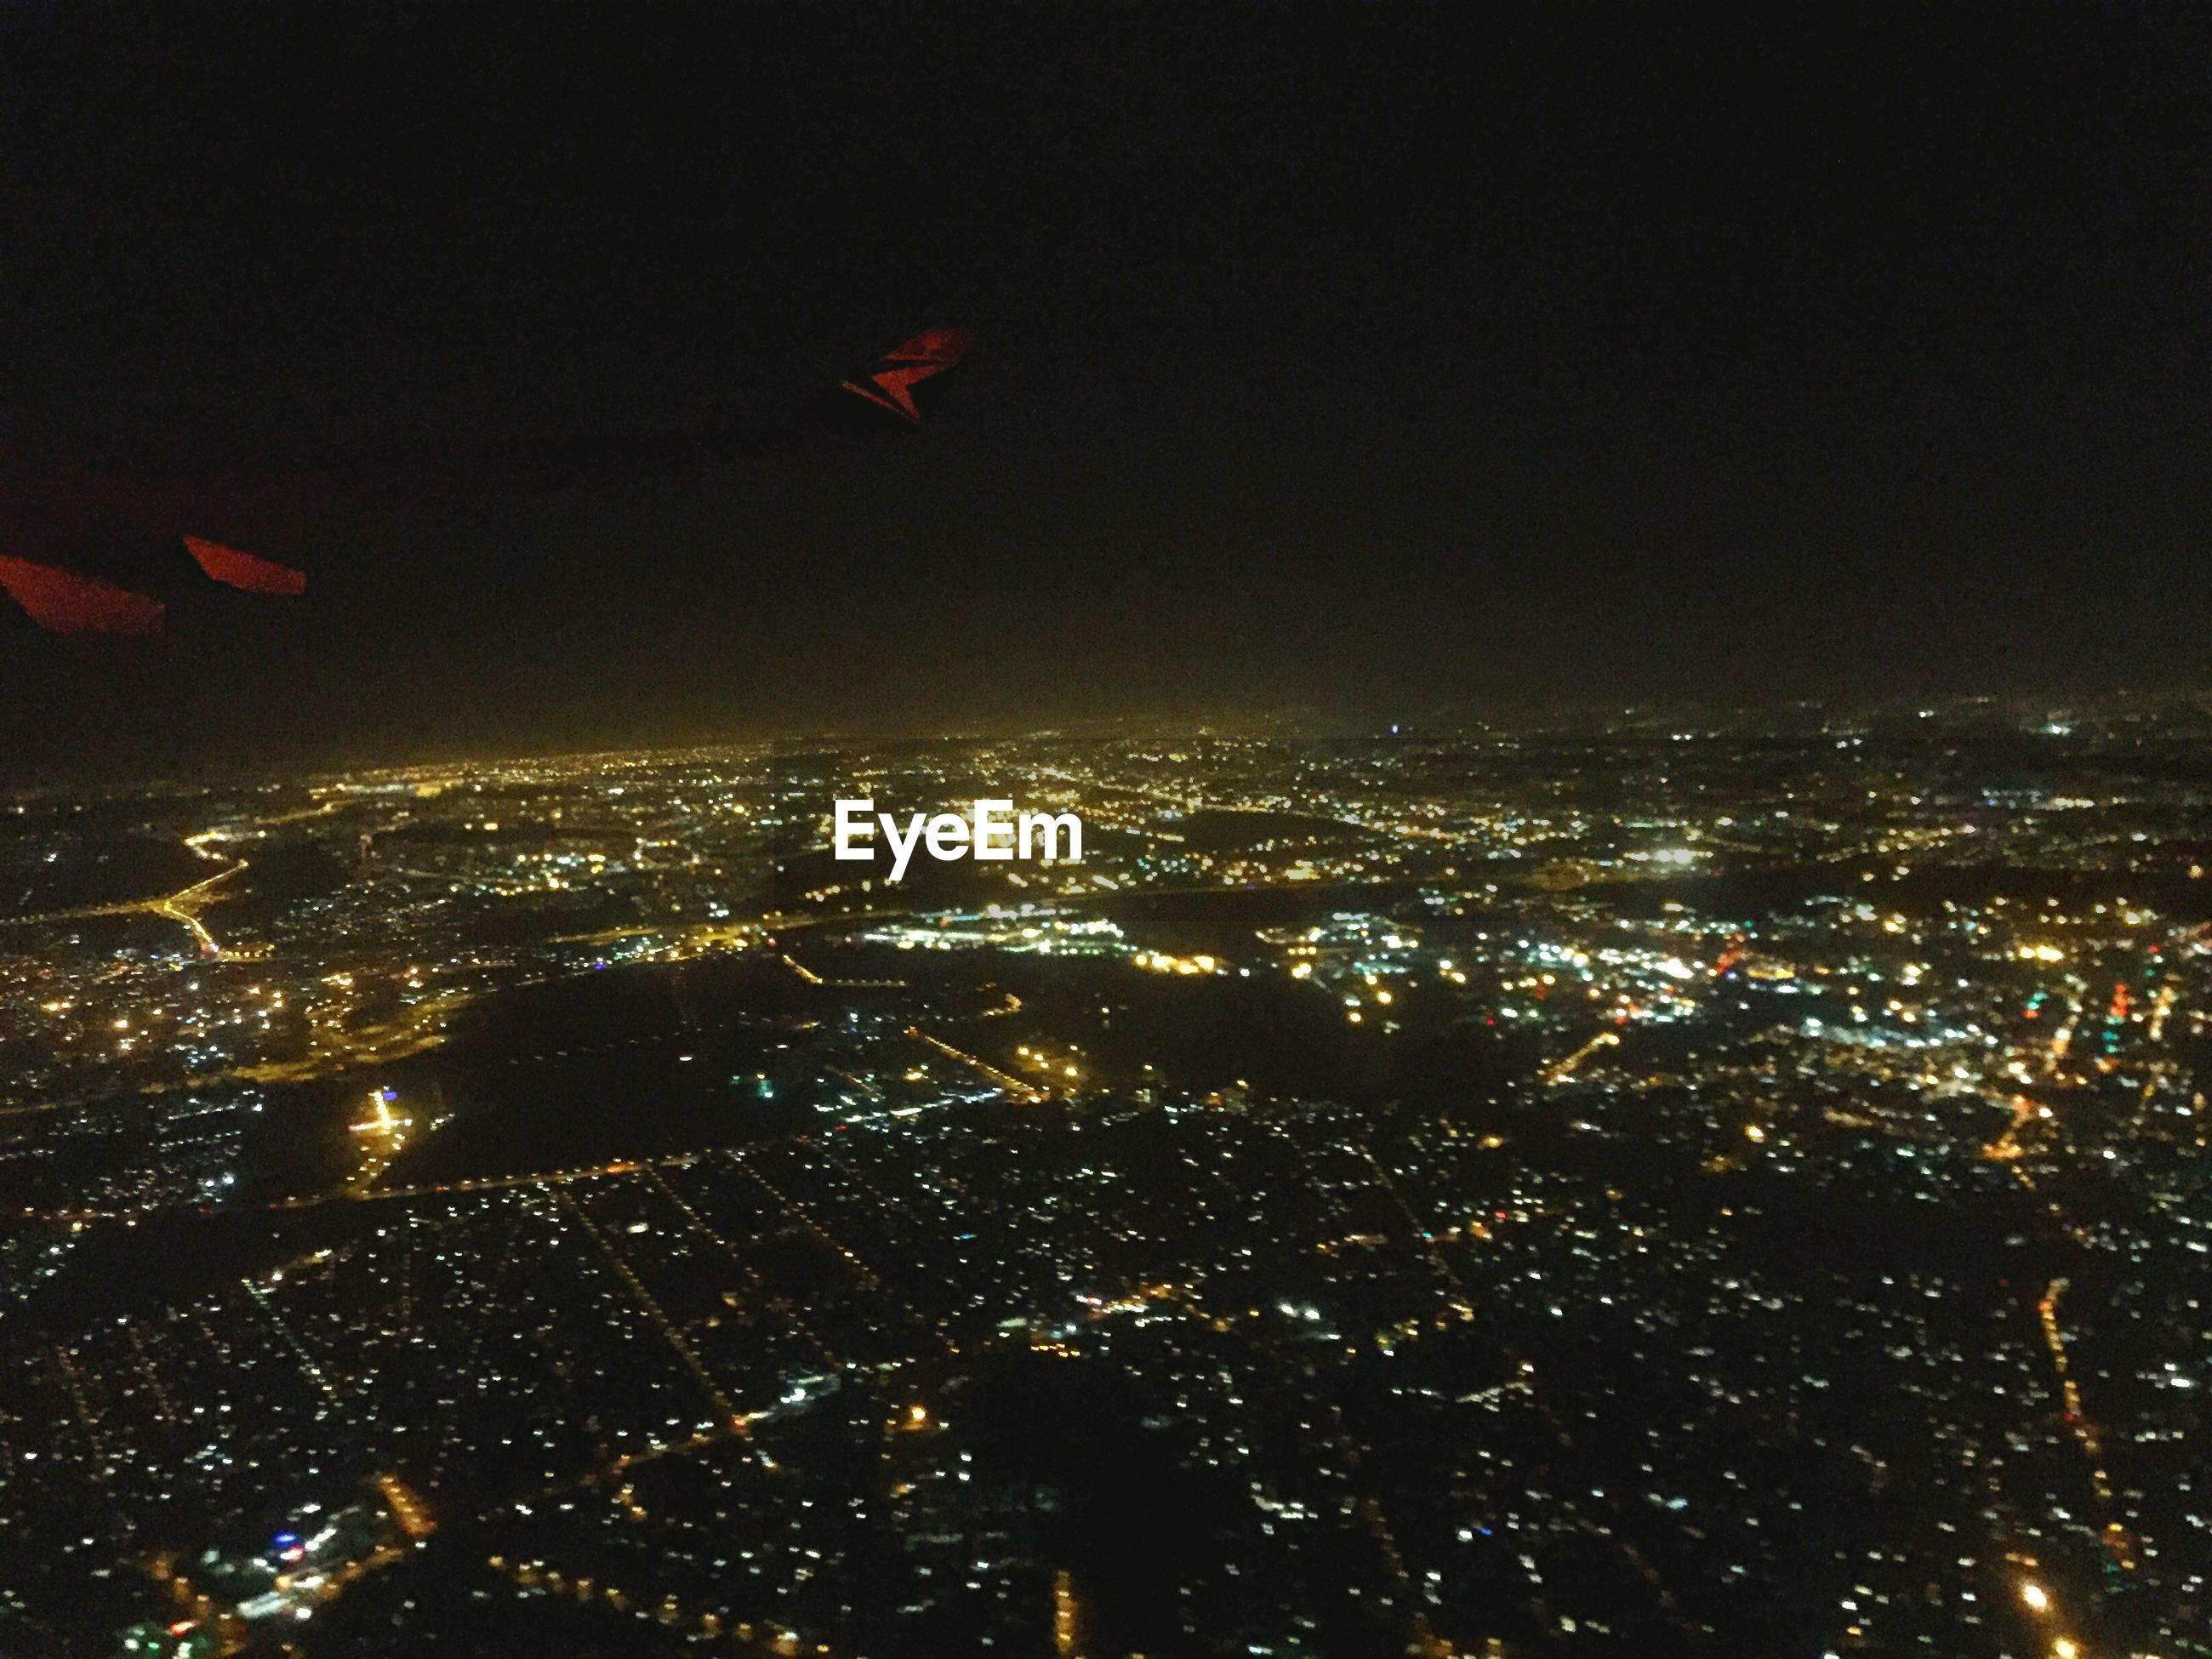 illuminated, night, cityscape, city, aerial view, architecture, building exterior, crowded, built structure, high angle view, copy space, residential district, city life, sky, skyscraper, dark, clear sky, modern, no people, capital cities